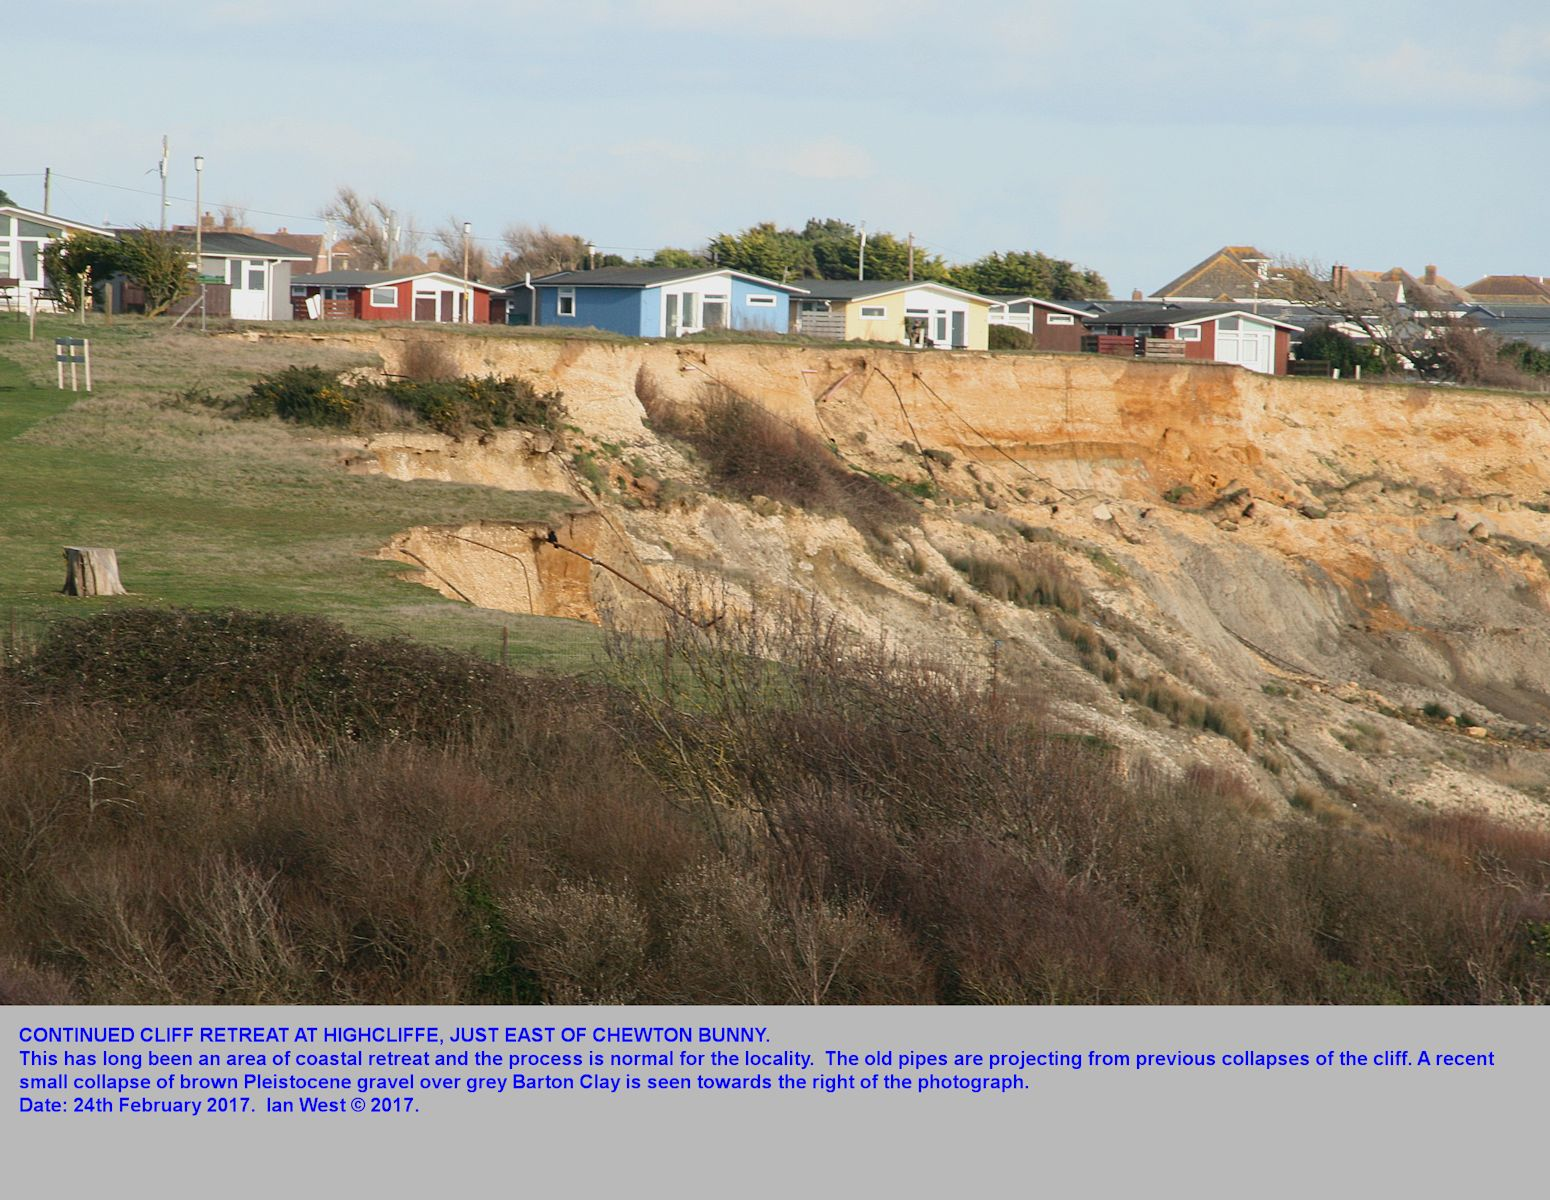 Erosion at the Naish Farm locality, Highcliffe, Hampshire, with some minor recent collapse of the top, Pleistocene gravel cliff, February 2017